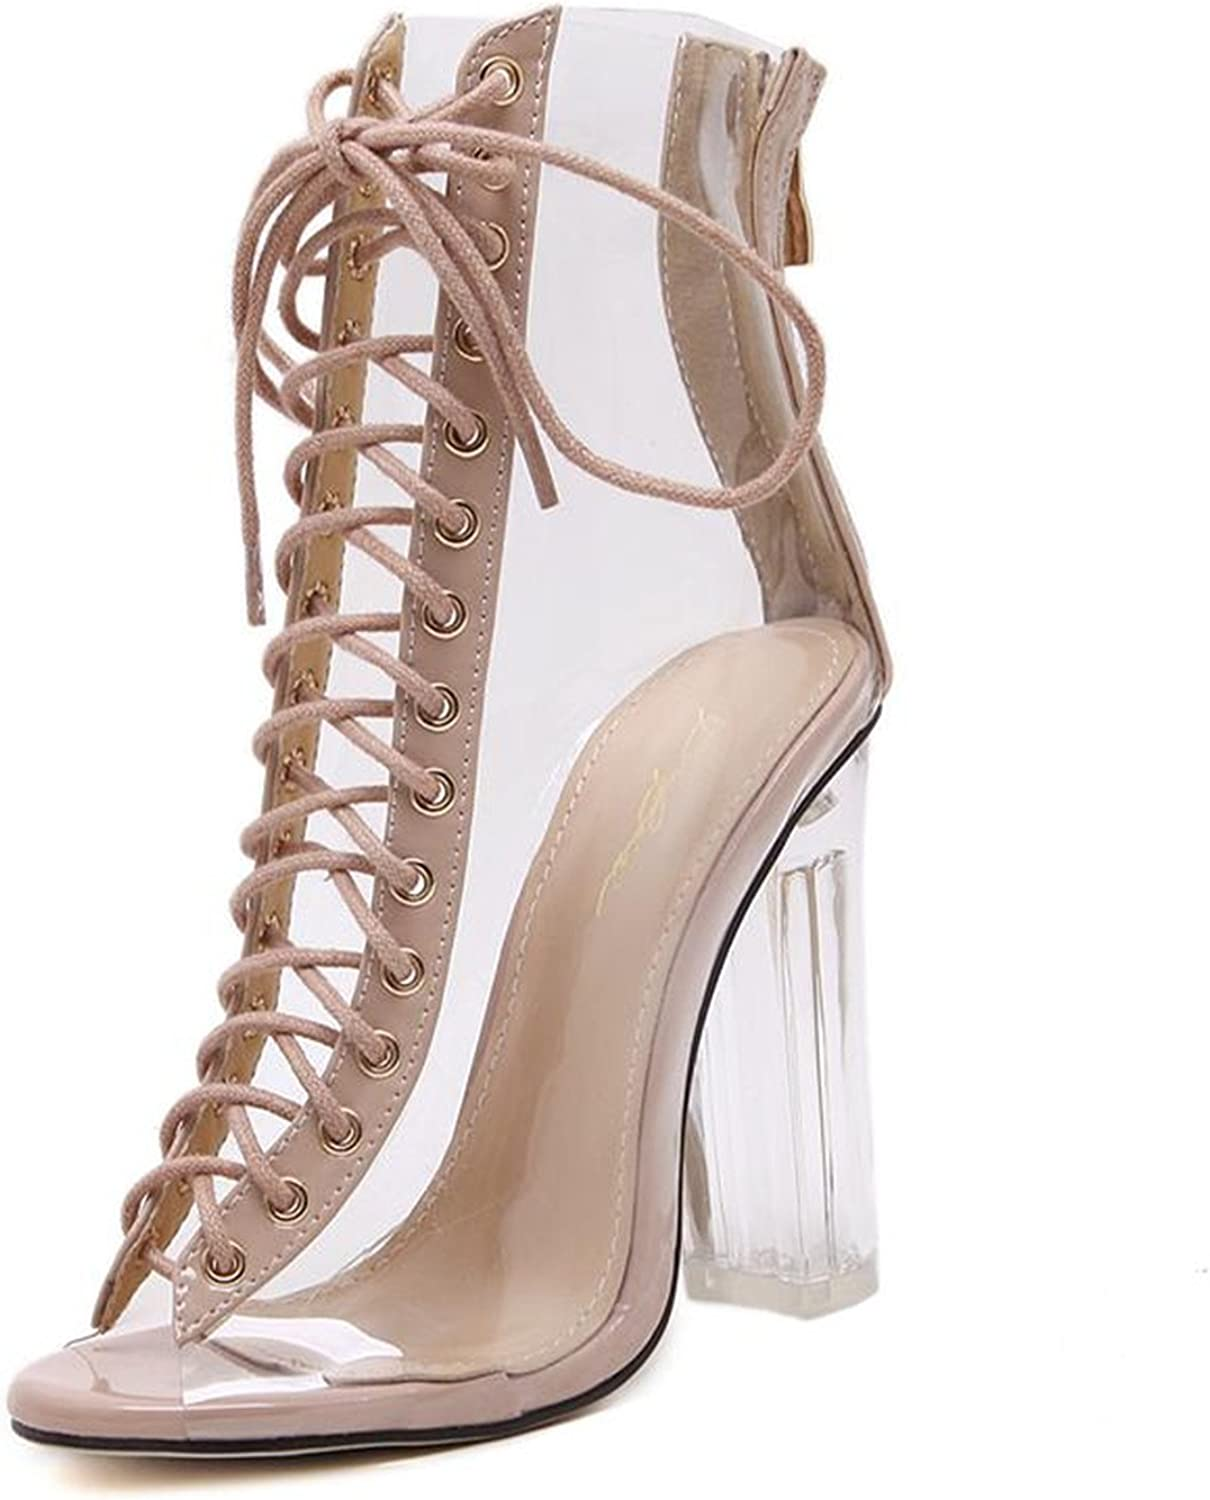 Jeff Tribble Sexy PVC Transparent Sandals Cross Strap Peep Toe shoes Clear Chunky Heels Women Ankle Boots